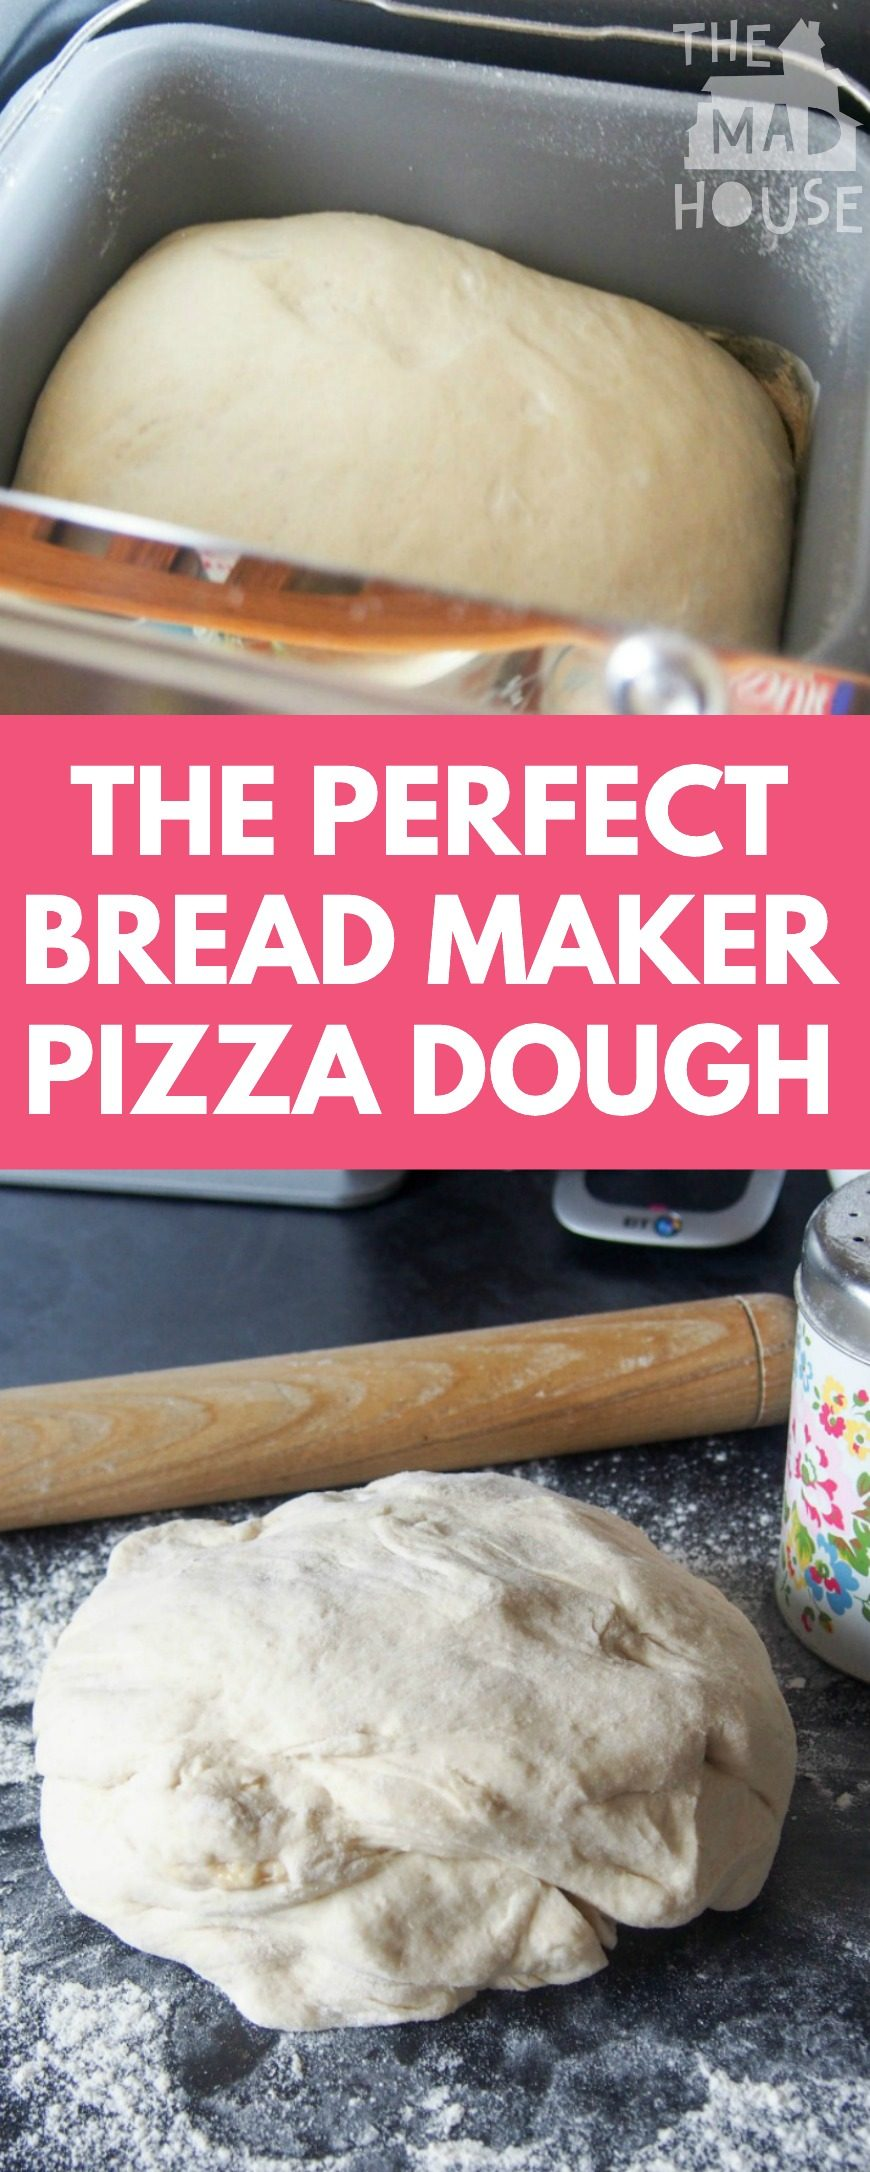 Kitchen Pro Bread Maker Pizza Dough Recipe